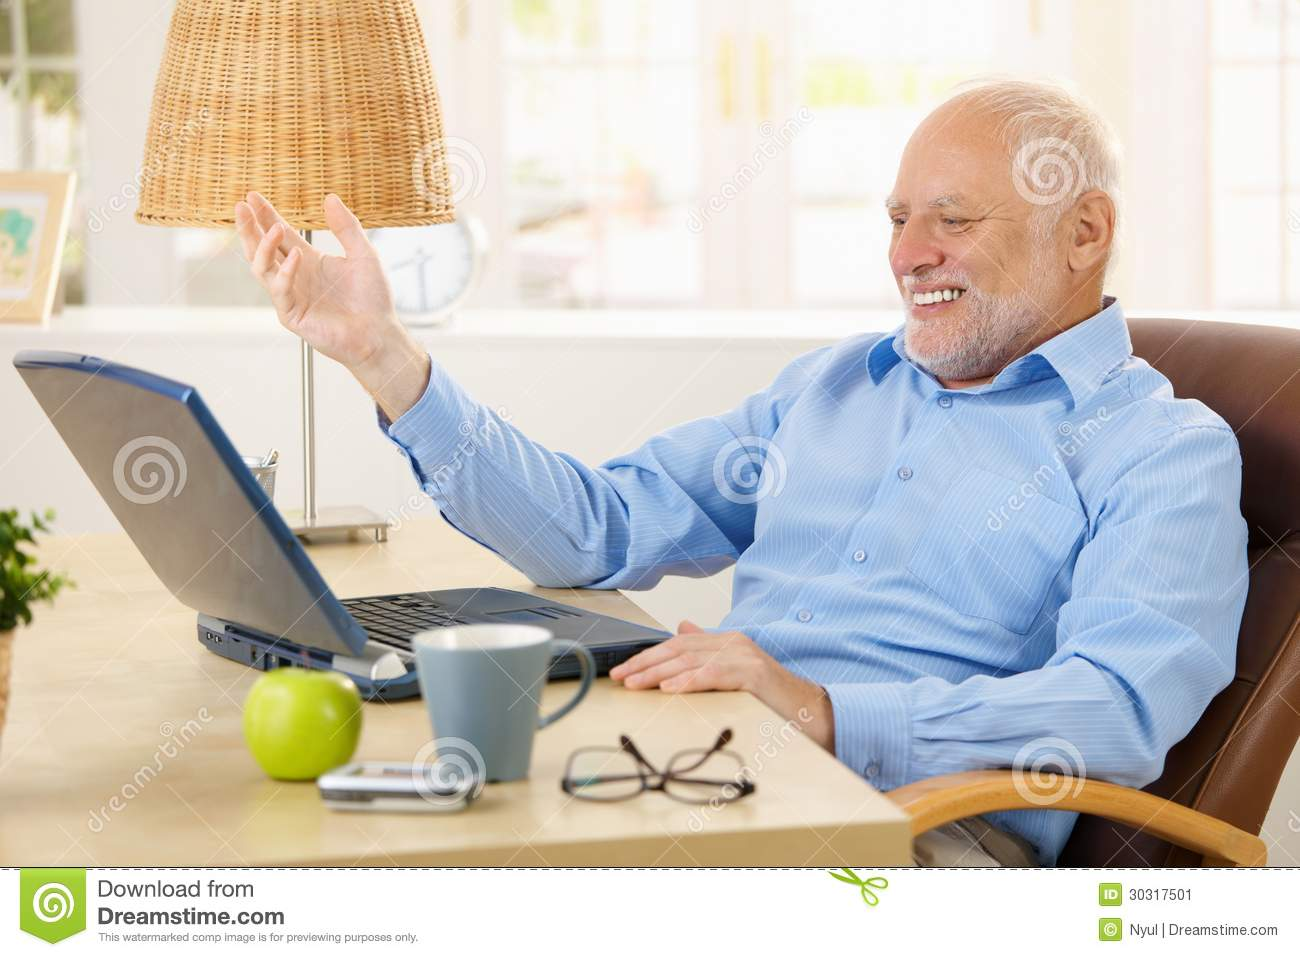 Laughing old man using laptop computer at home, looking at screen ...: www.dreamstime.com/stock-image-laughing-old-man-using-laptop...